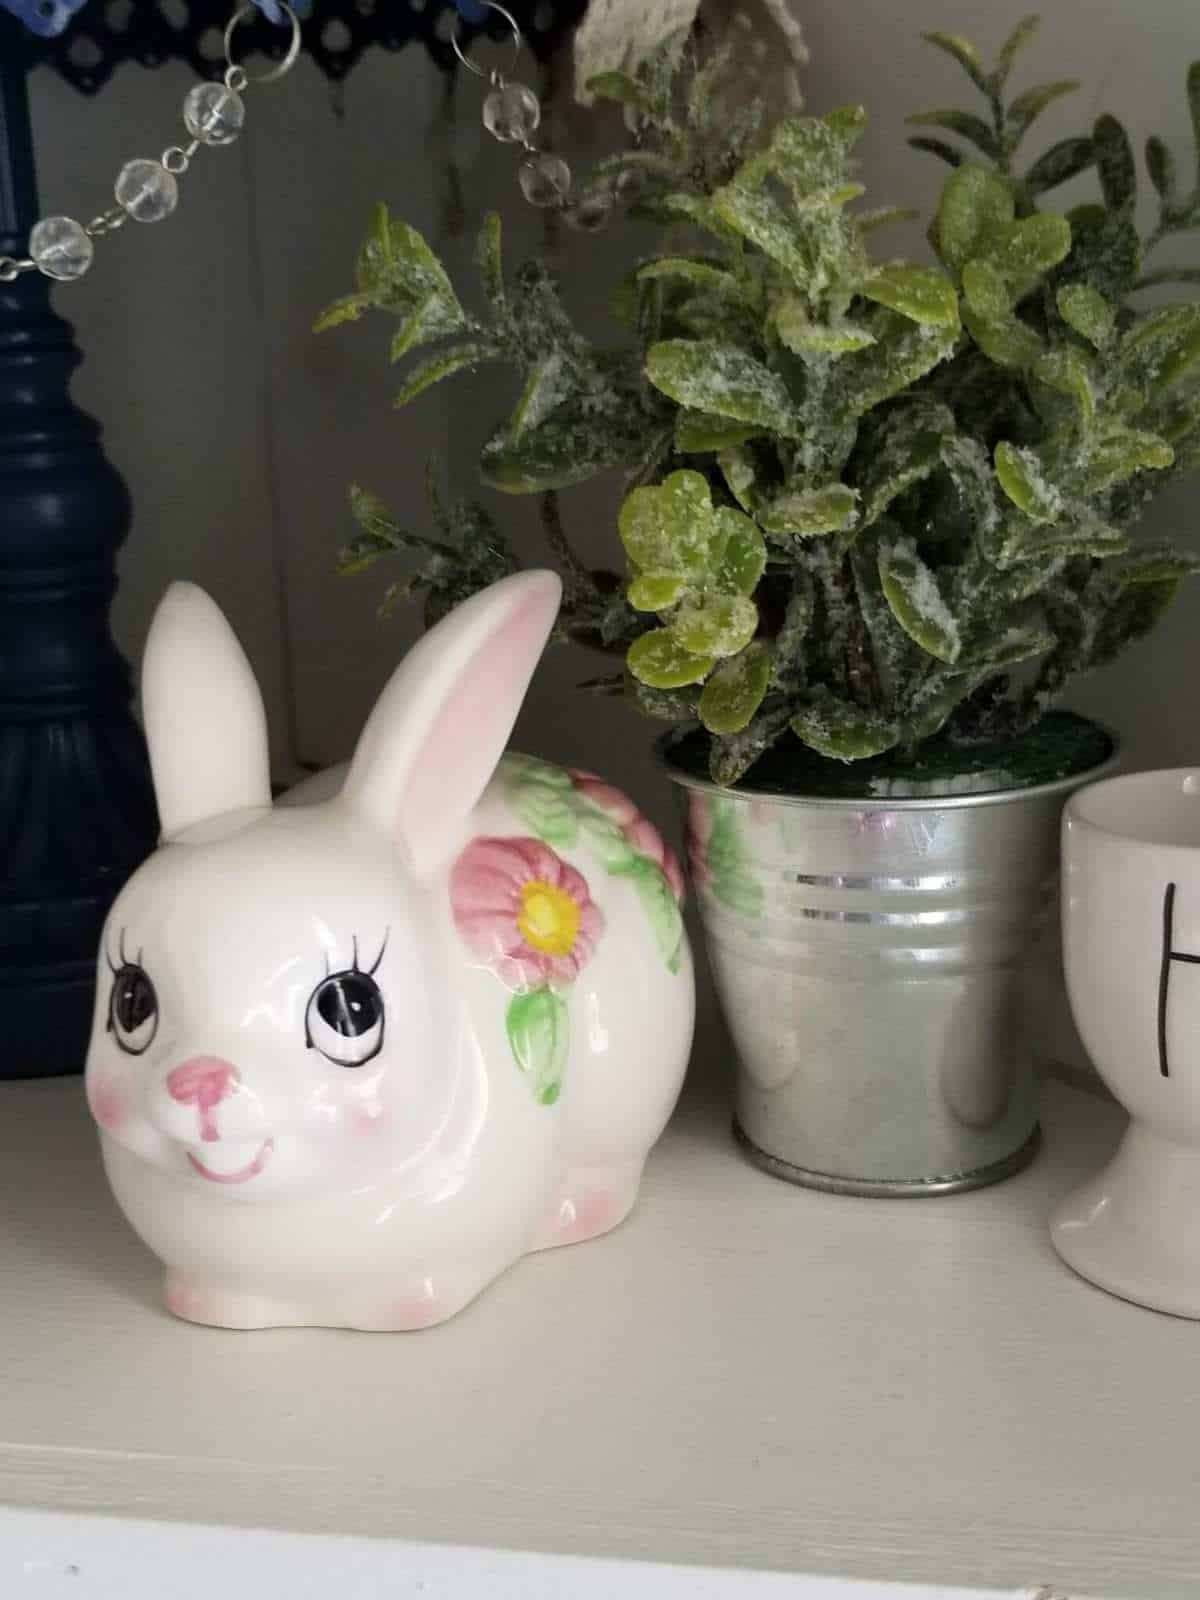 Ceramic White Cute Bunny Figurine Rabbit Cotton Ball Holder with Pink Flowers Free Shipping